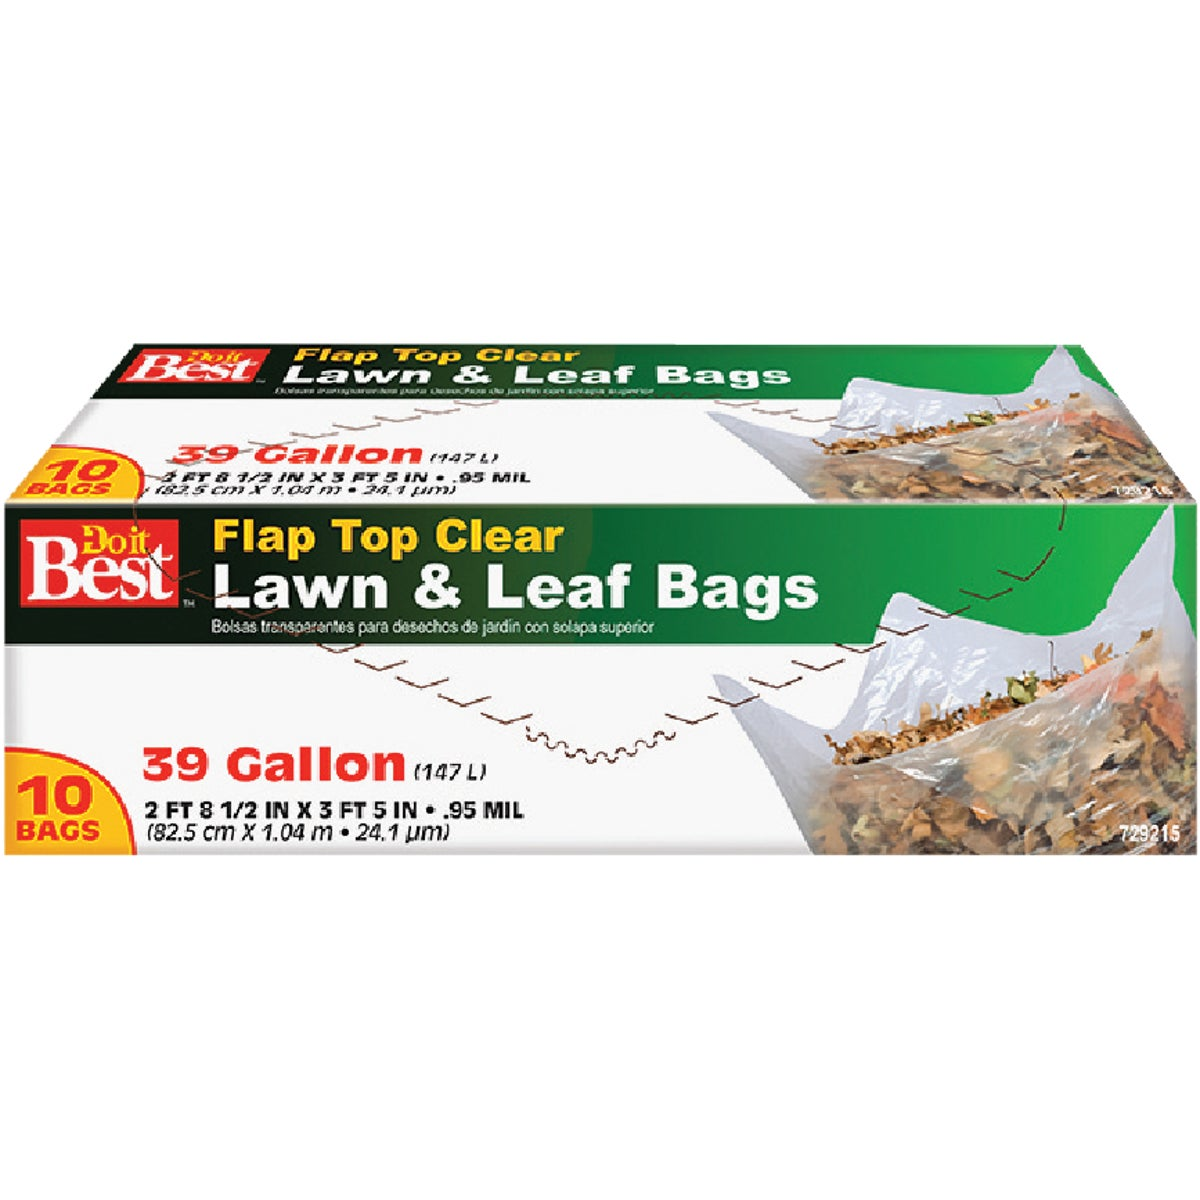 39GAL CLR LAWN& LEAF BAG - 729215 by Presto Products